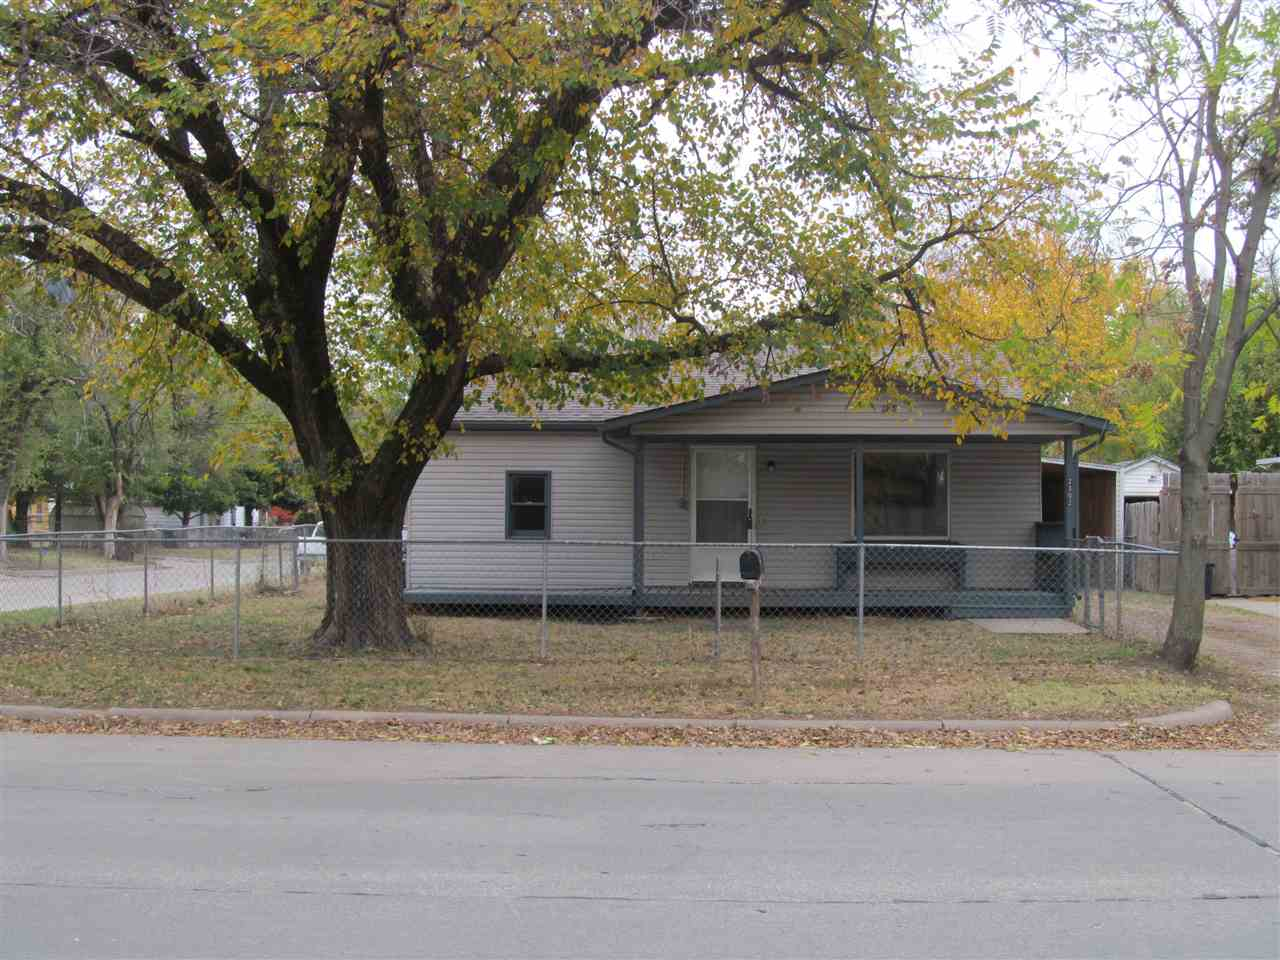 Wichita Ks Homes For Sale 70 000 To 75 000